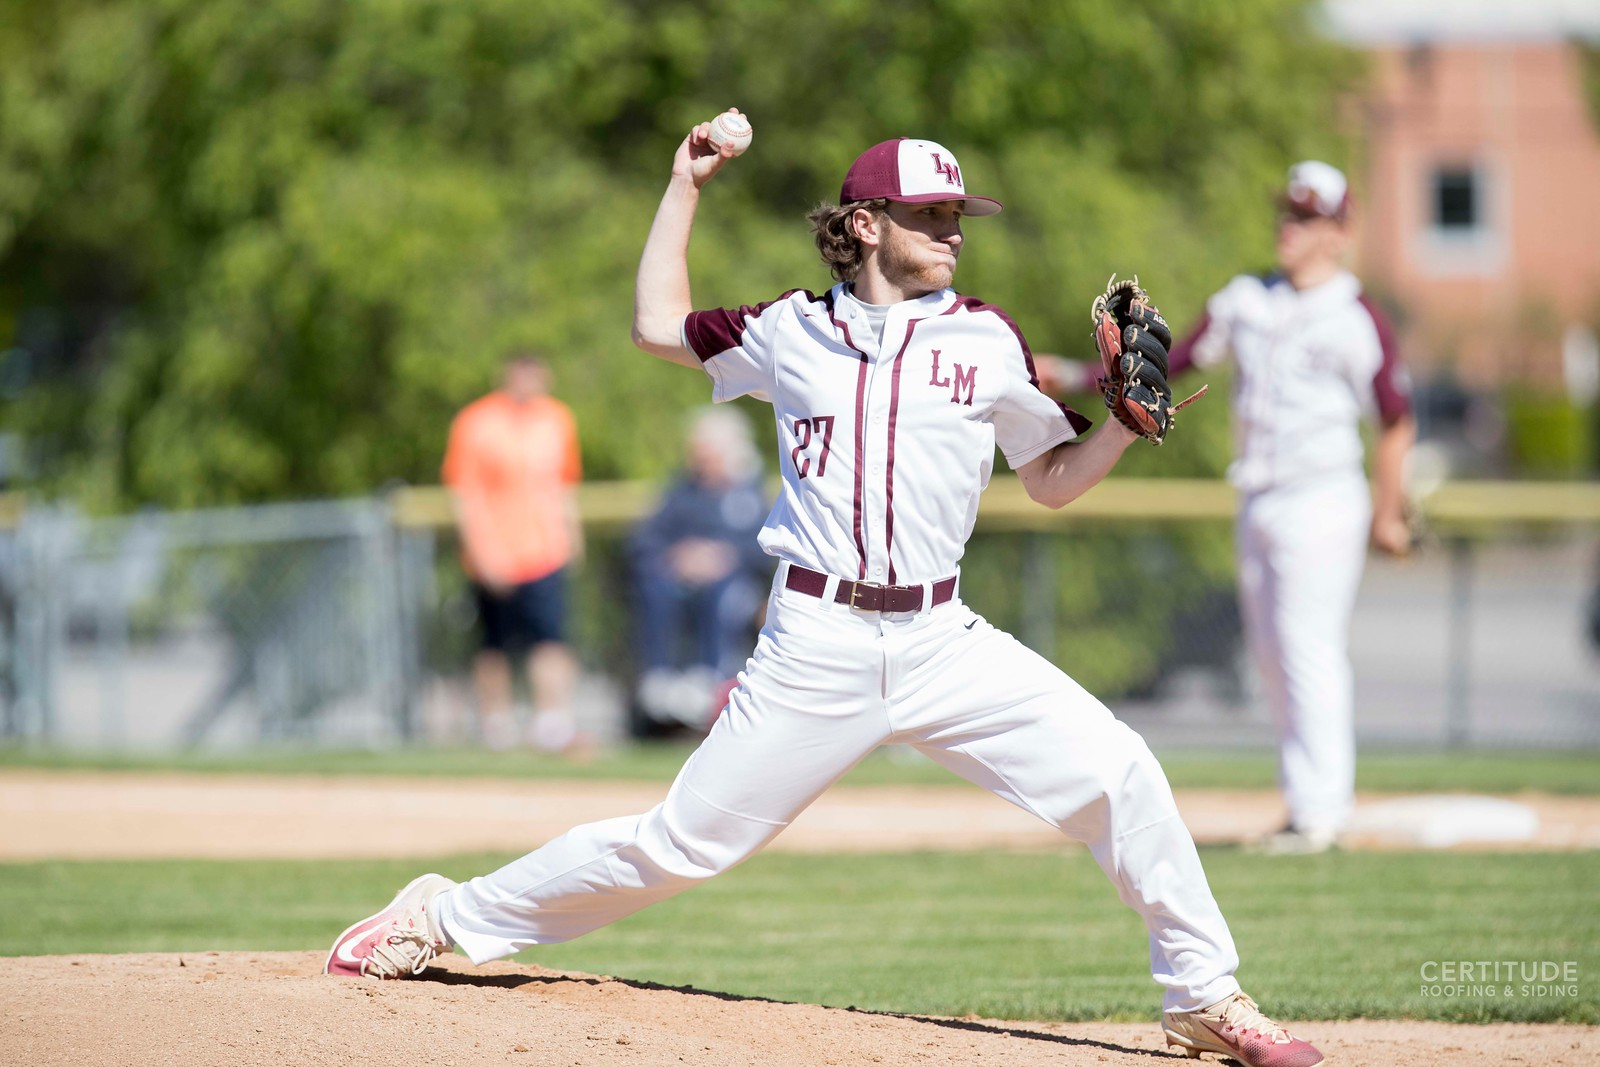 Lower_Merion_BASEBALL_vs_Conestoga-92